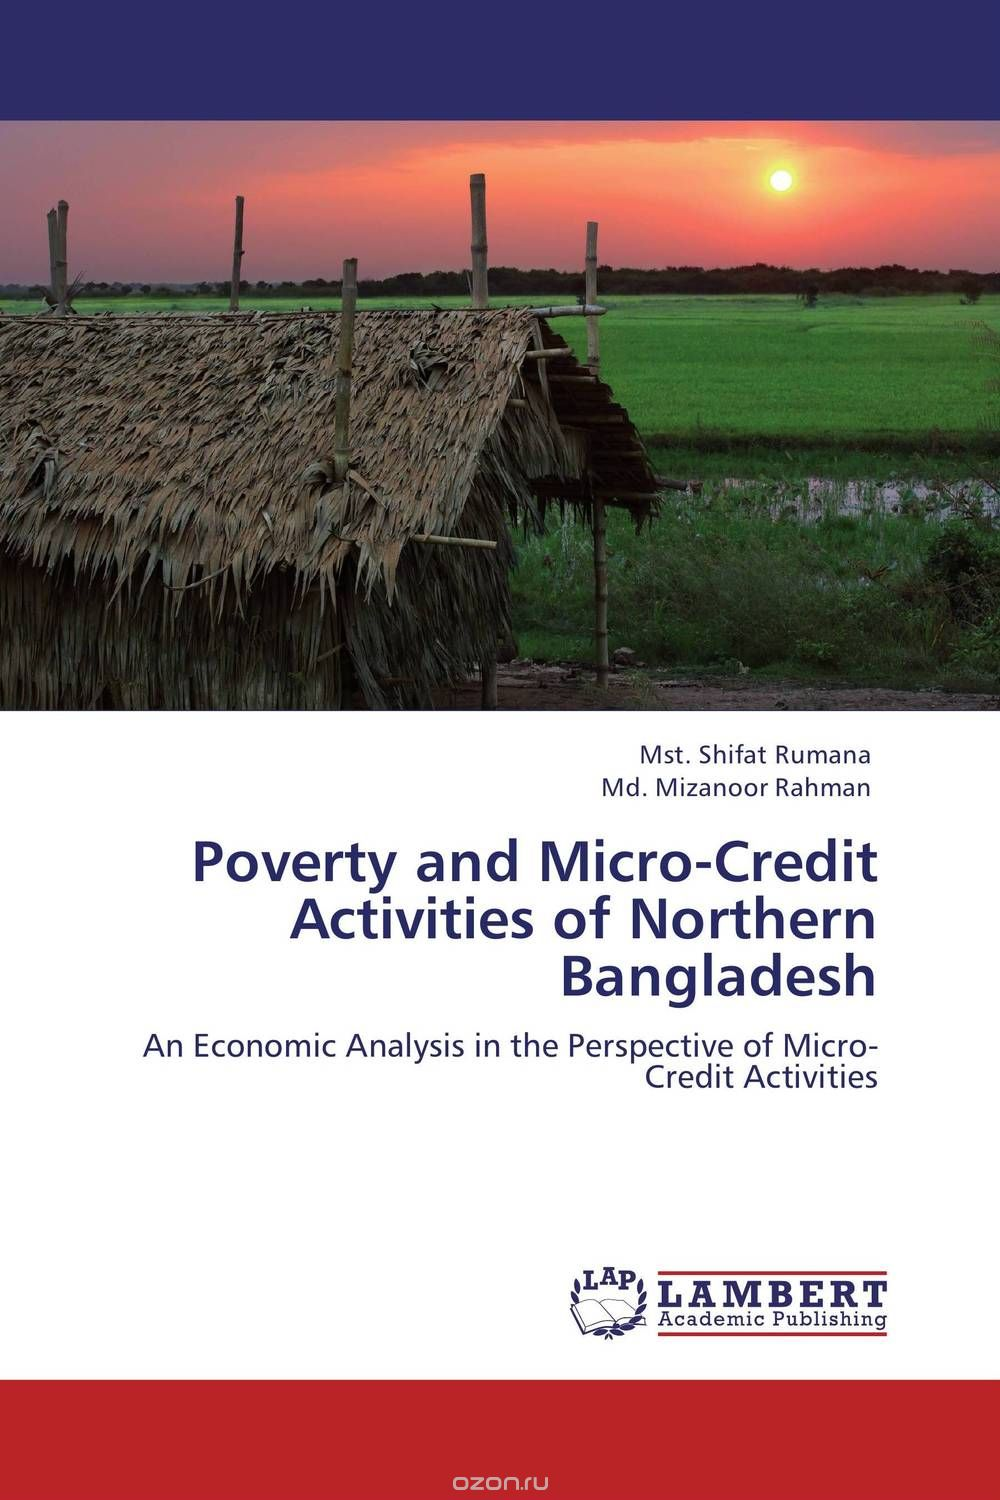 Poverty and Micro-Credit Activities of Northern Bangladesh